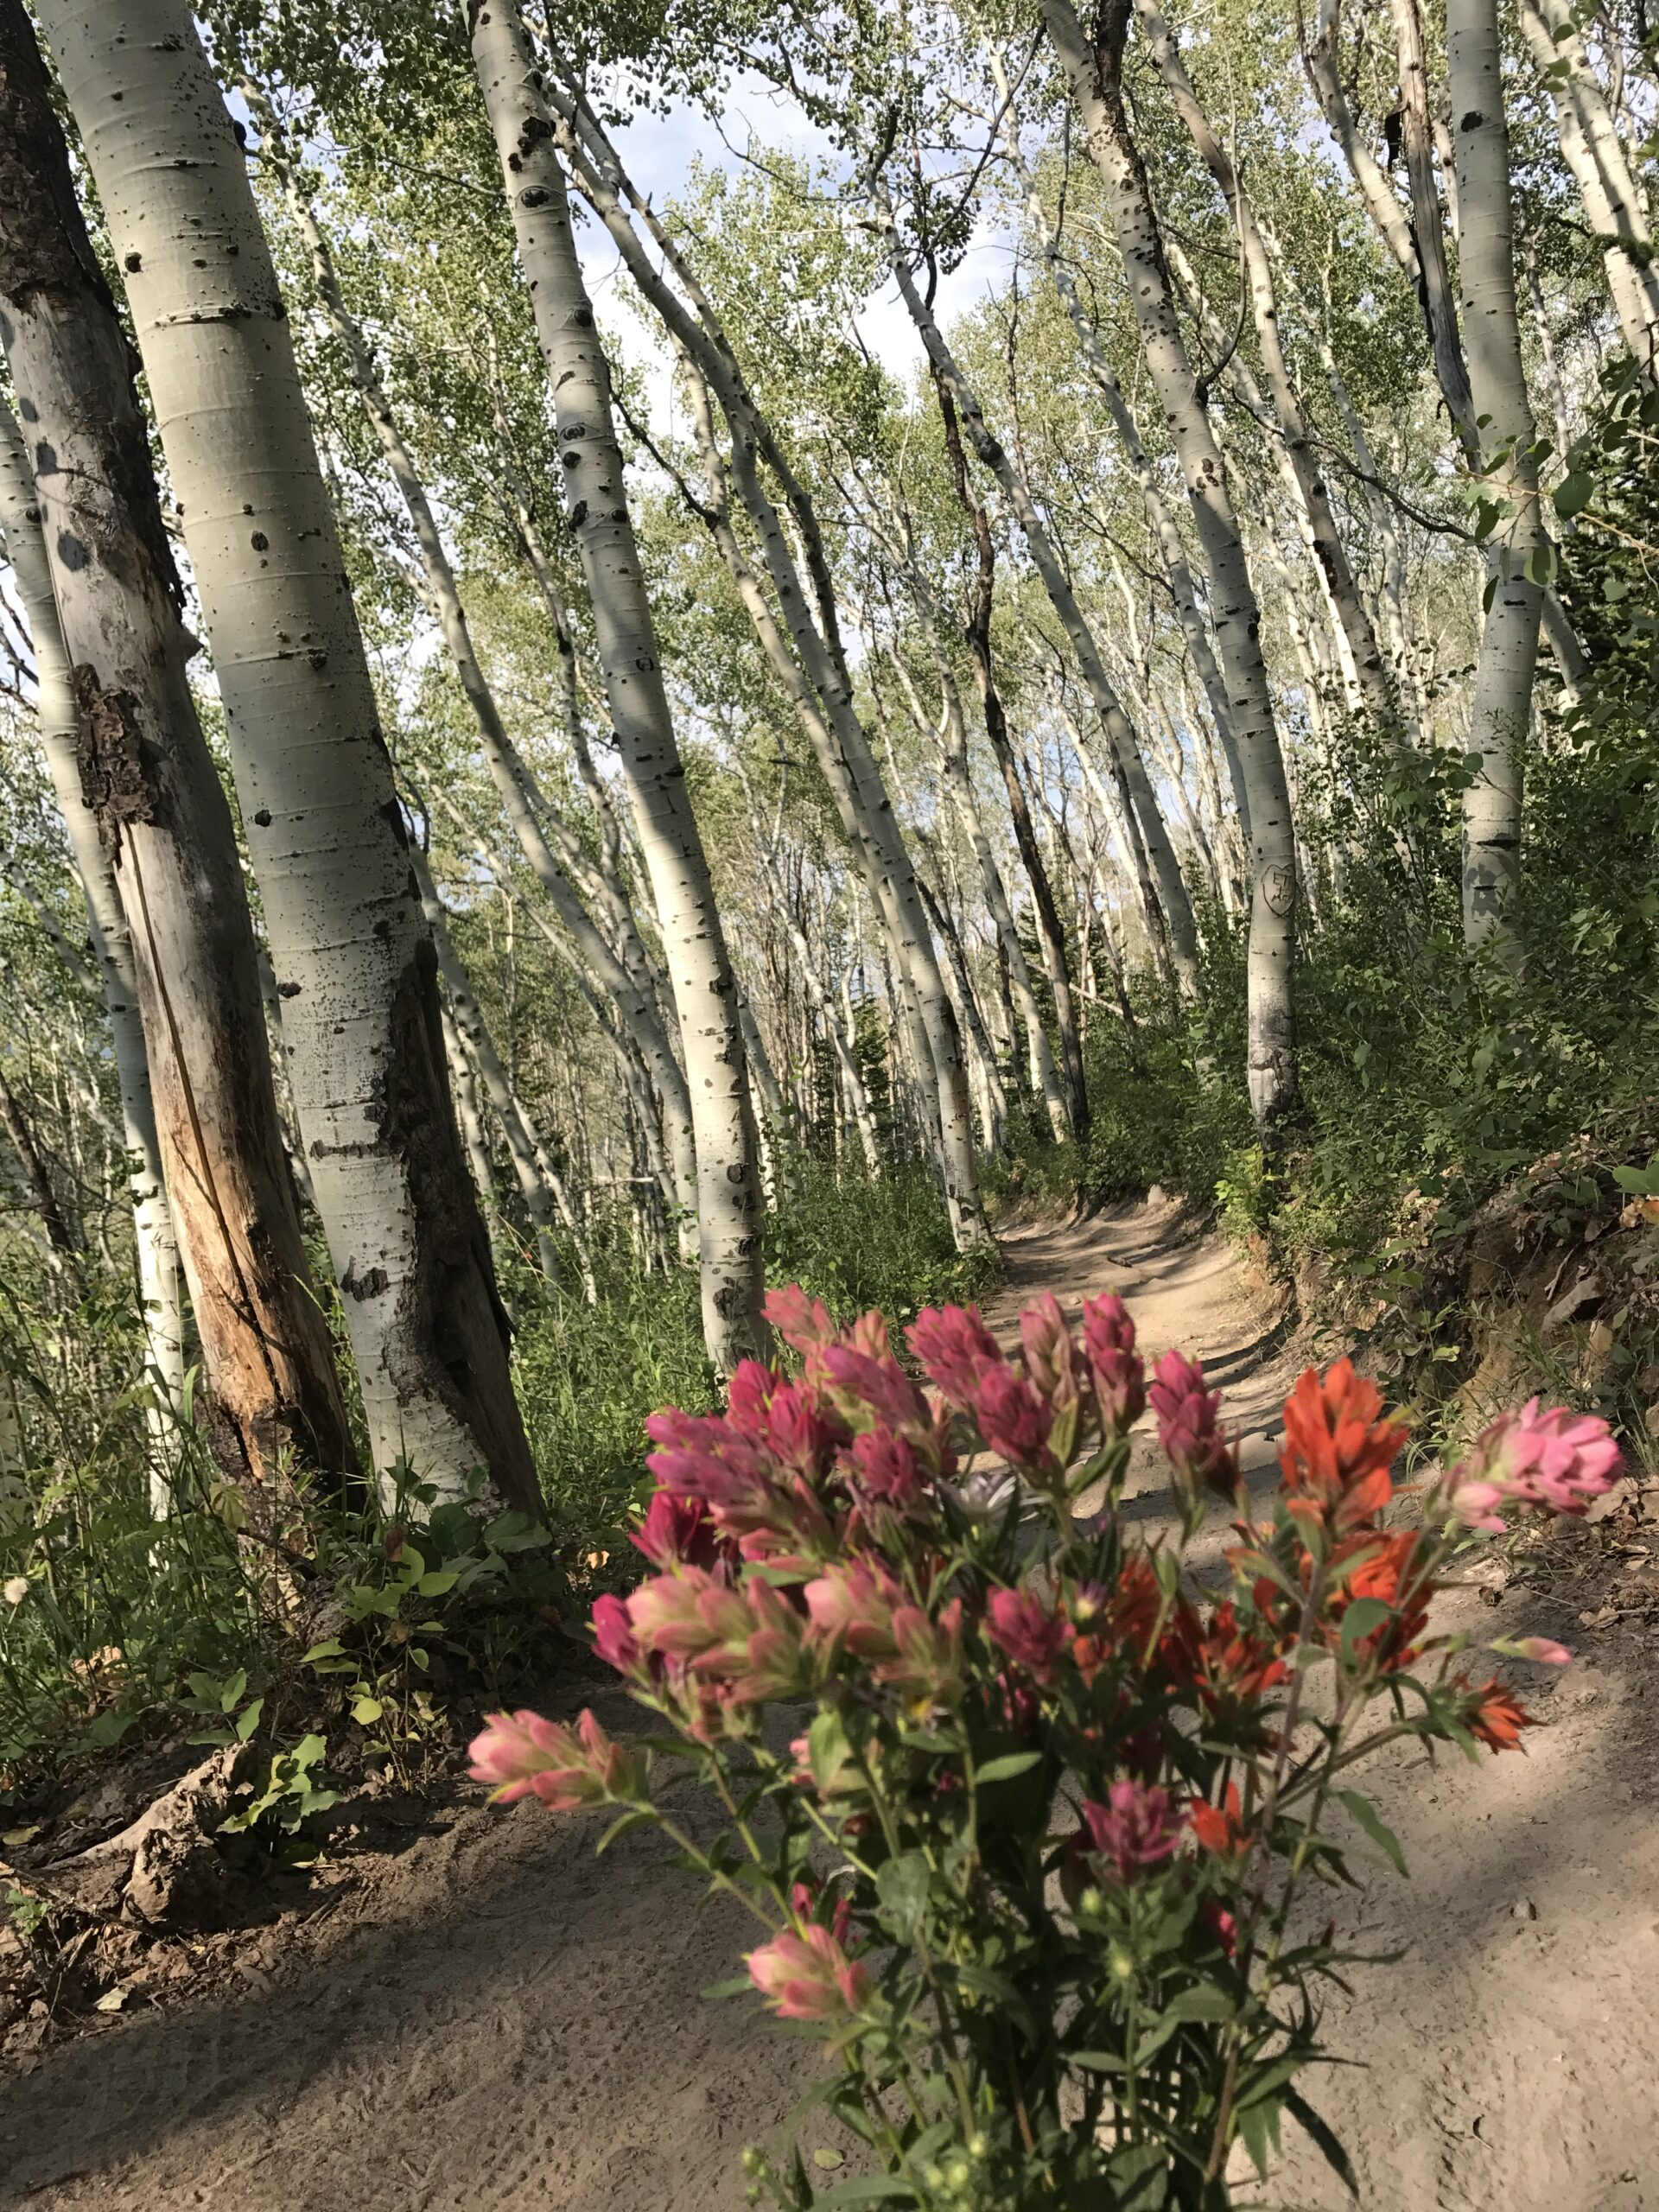 Bouquet of Wildflowers Picked on a Trail Surrounded by Aspen Trees in Park City Utah